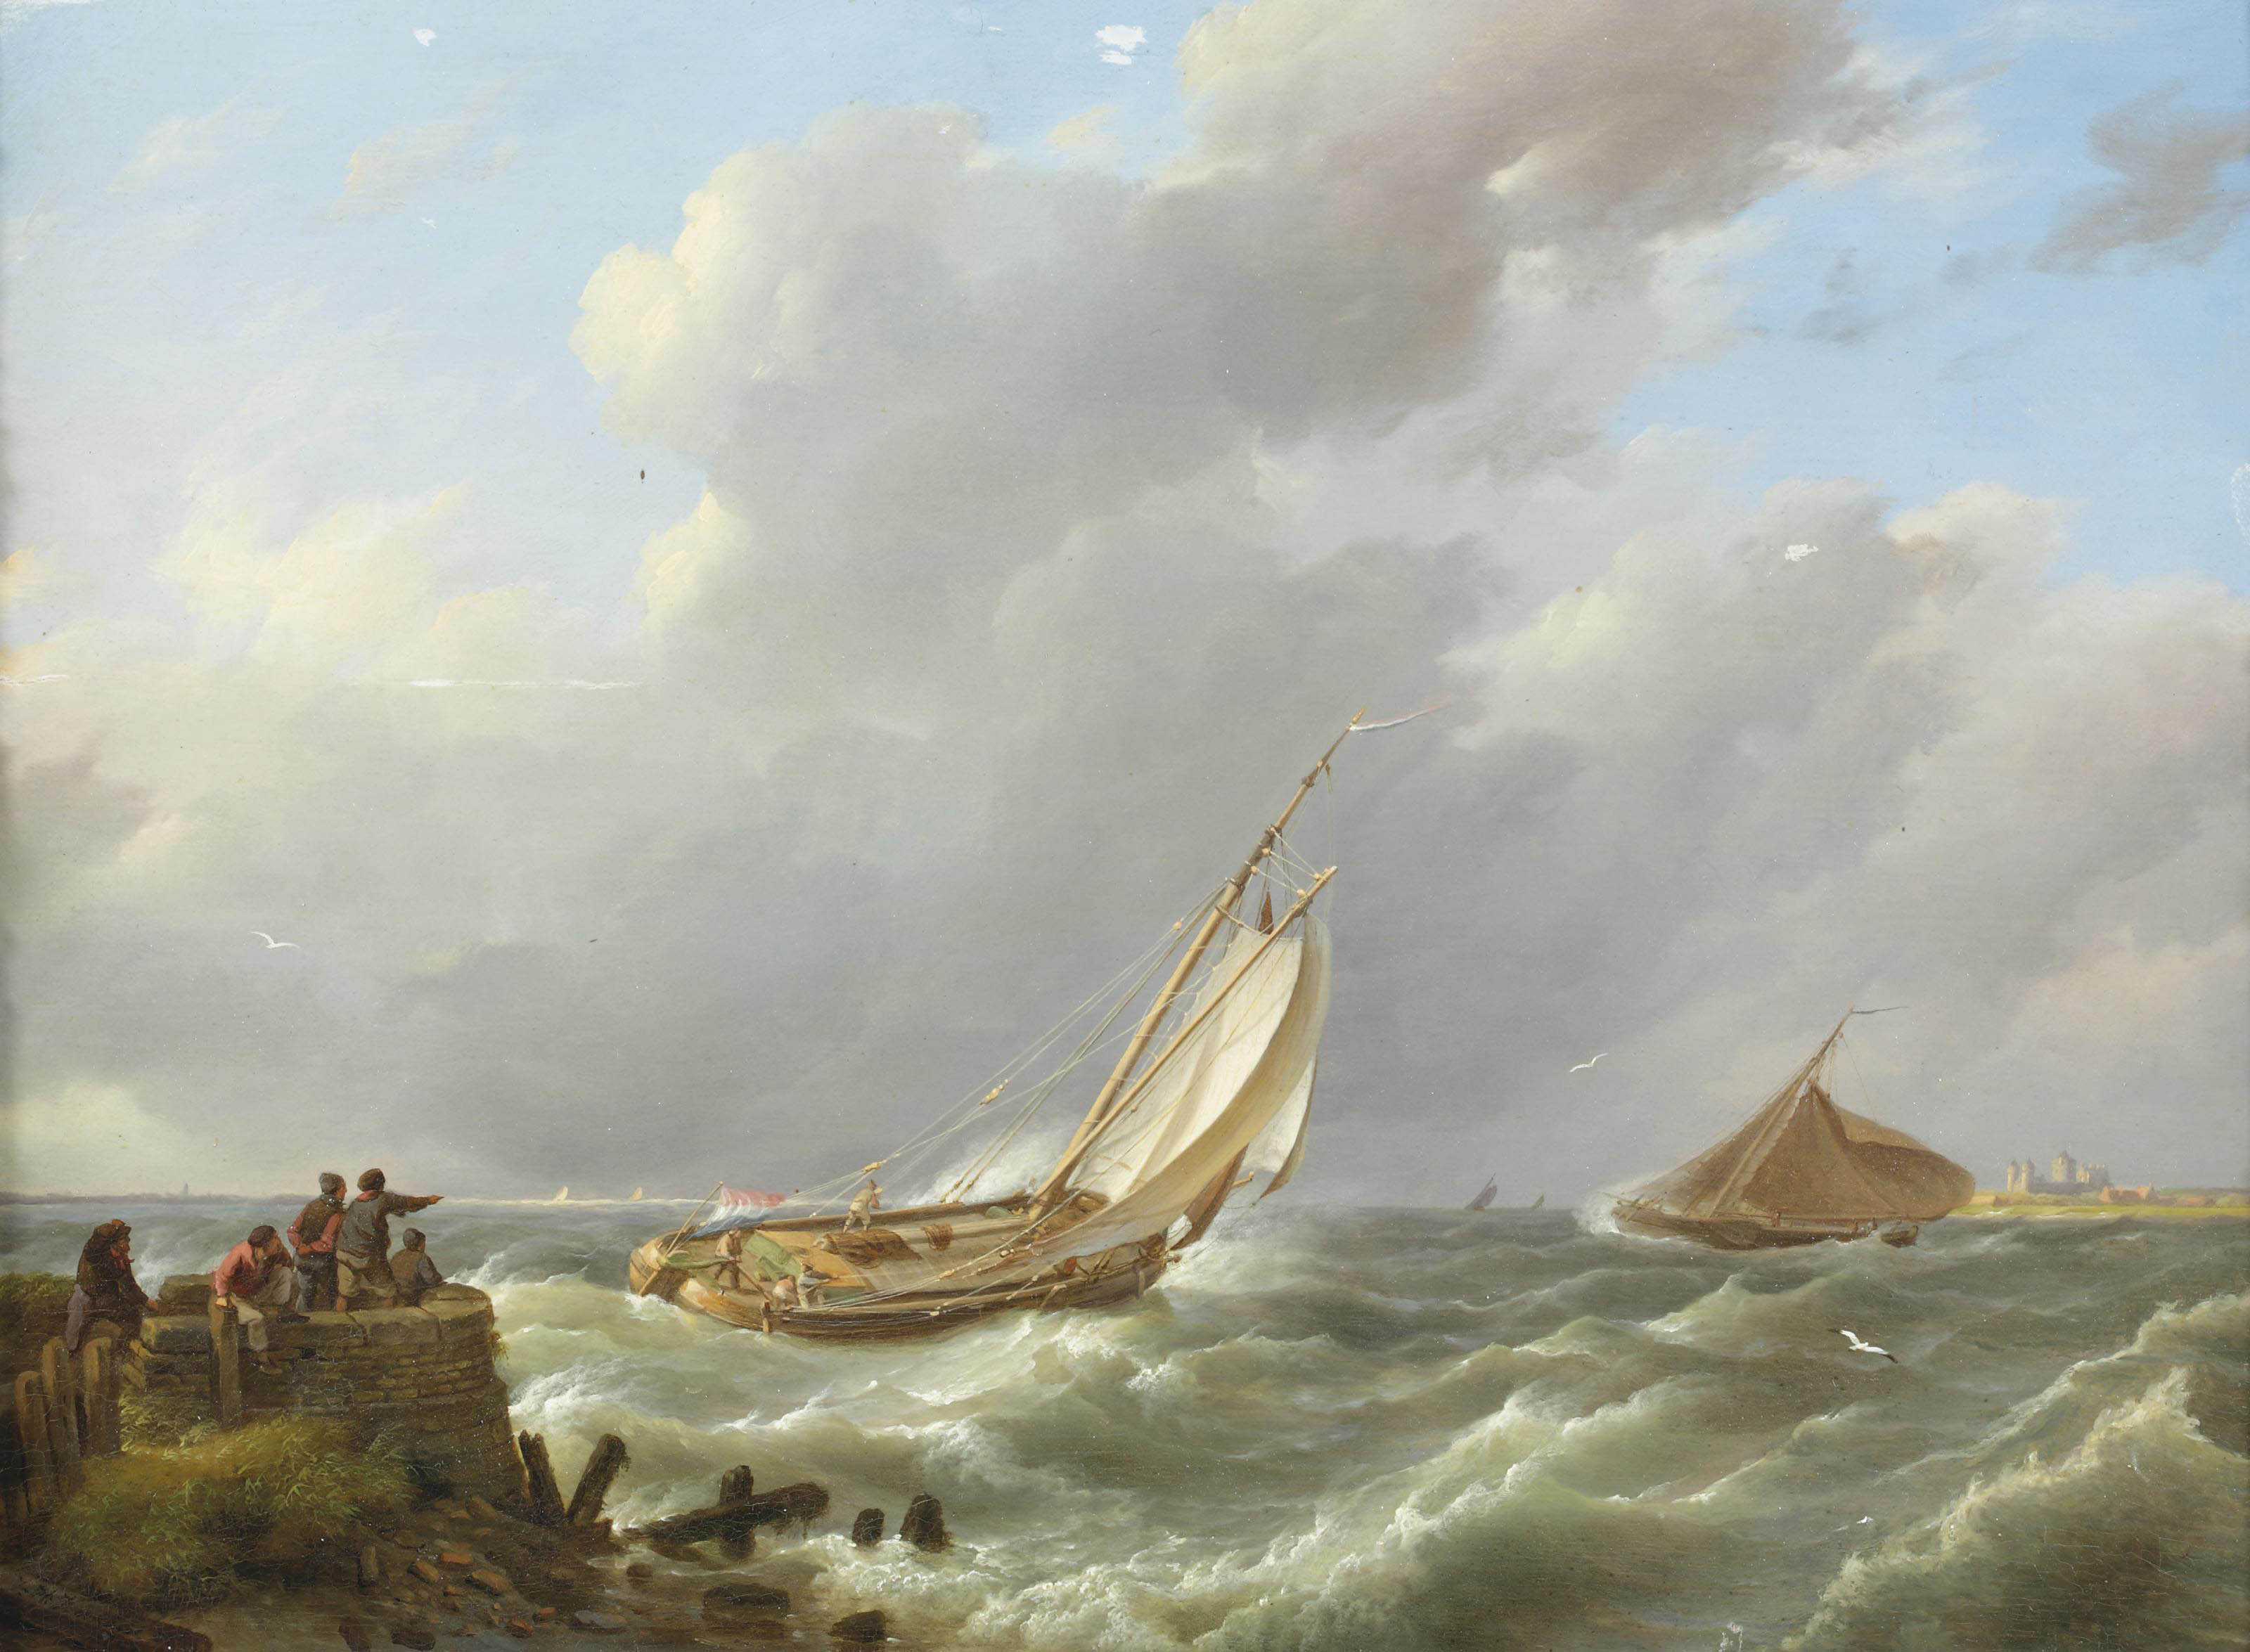 A sailing boat on choppy waters, Muiden in the distance